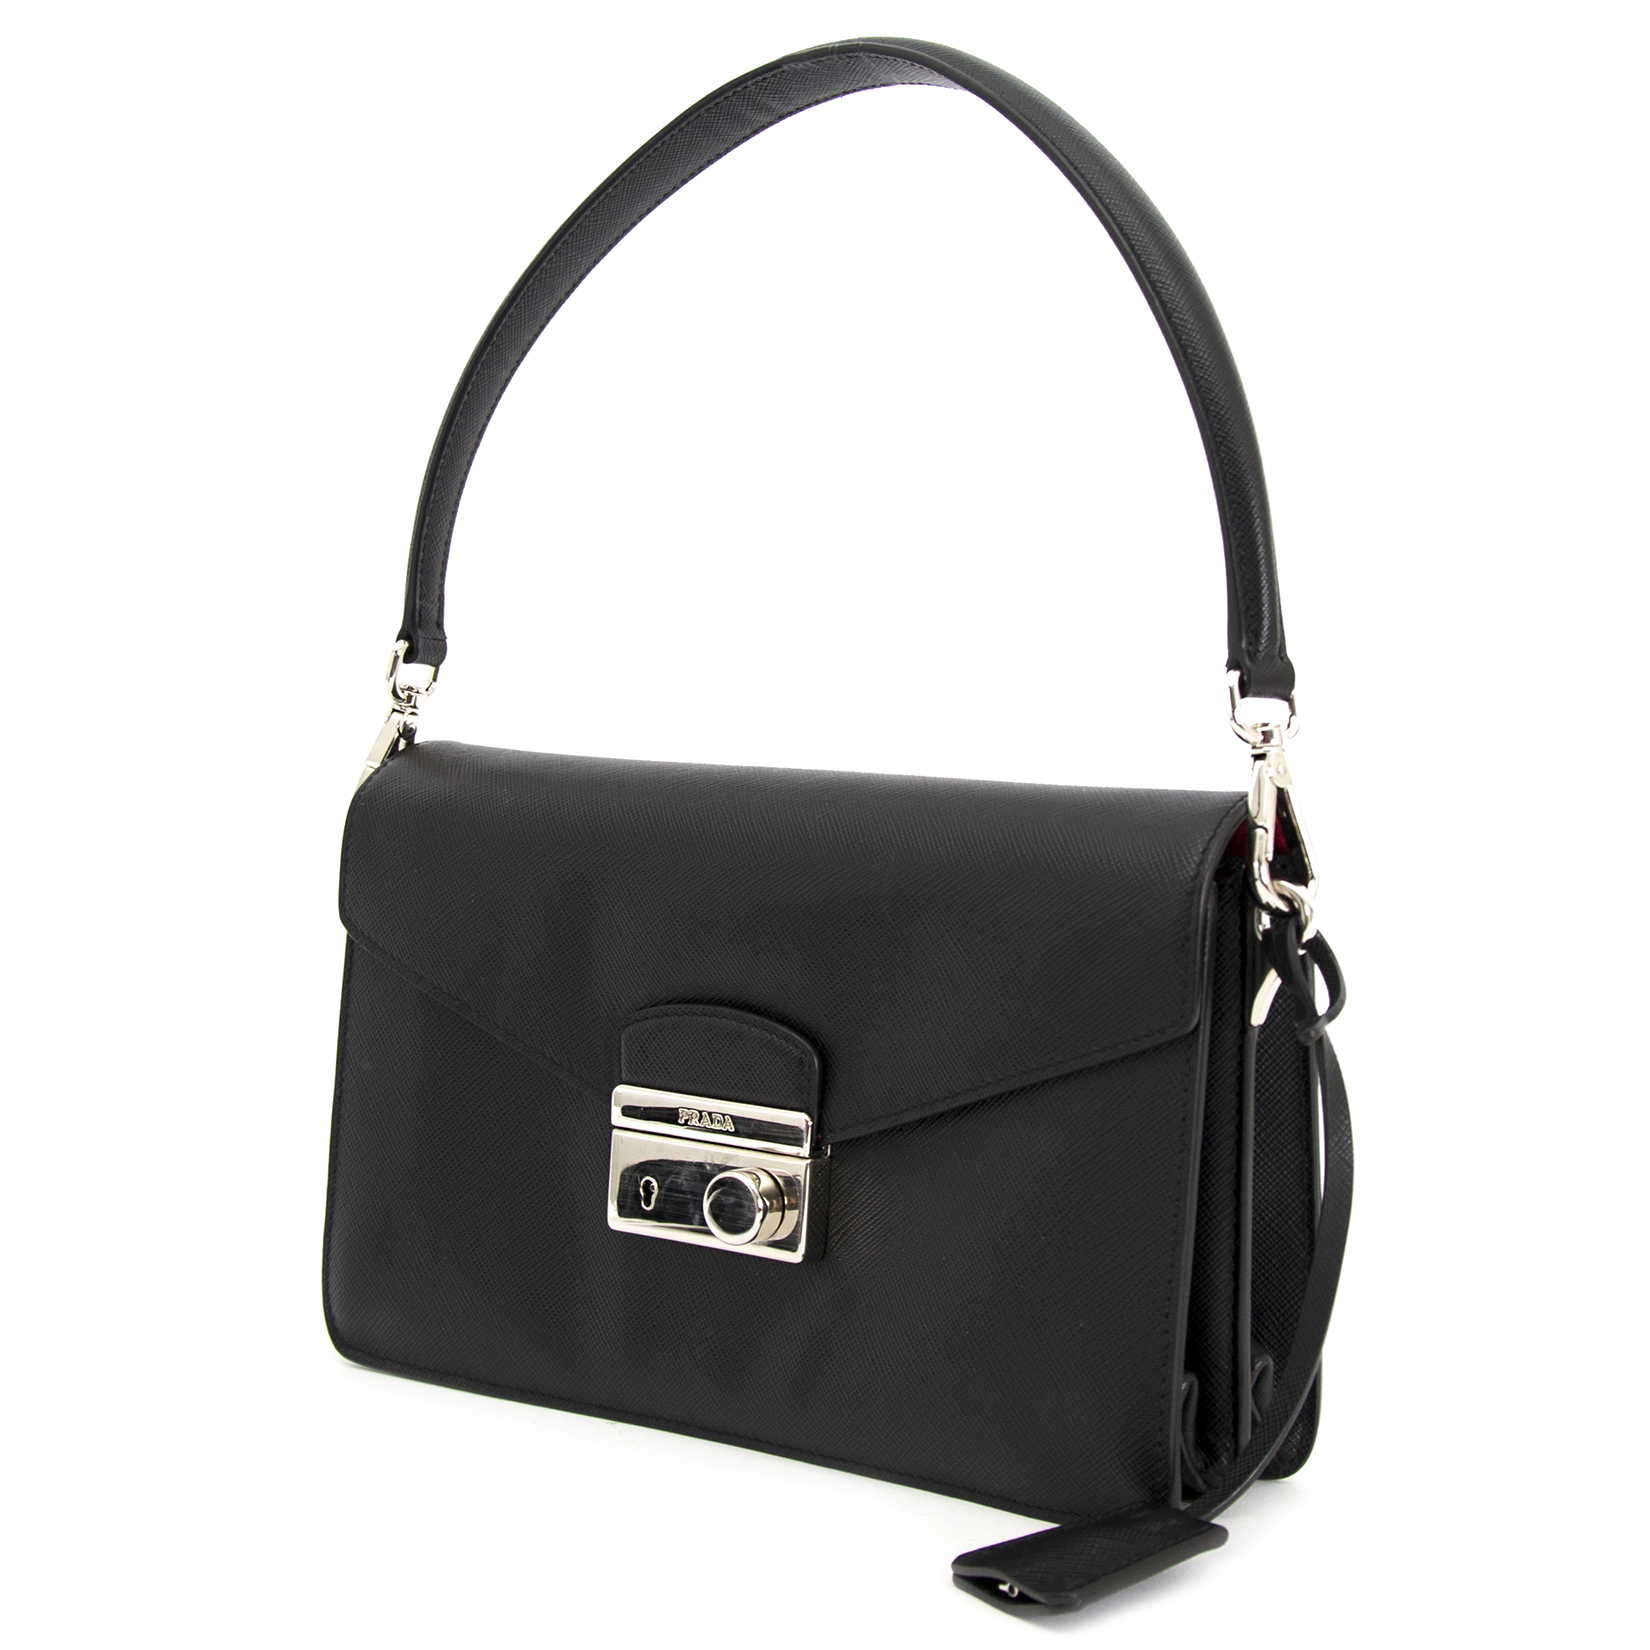 looking for a secondhand Prada Saffiano Leather Shoulder Bag